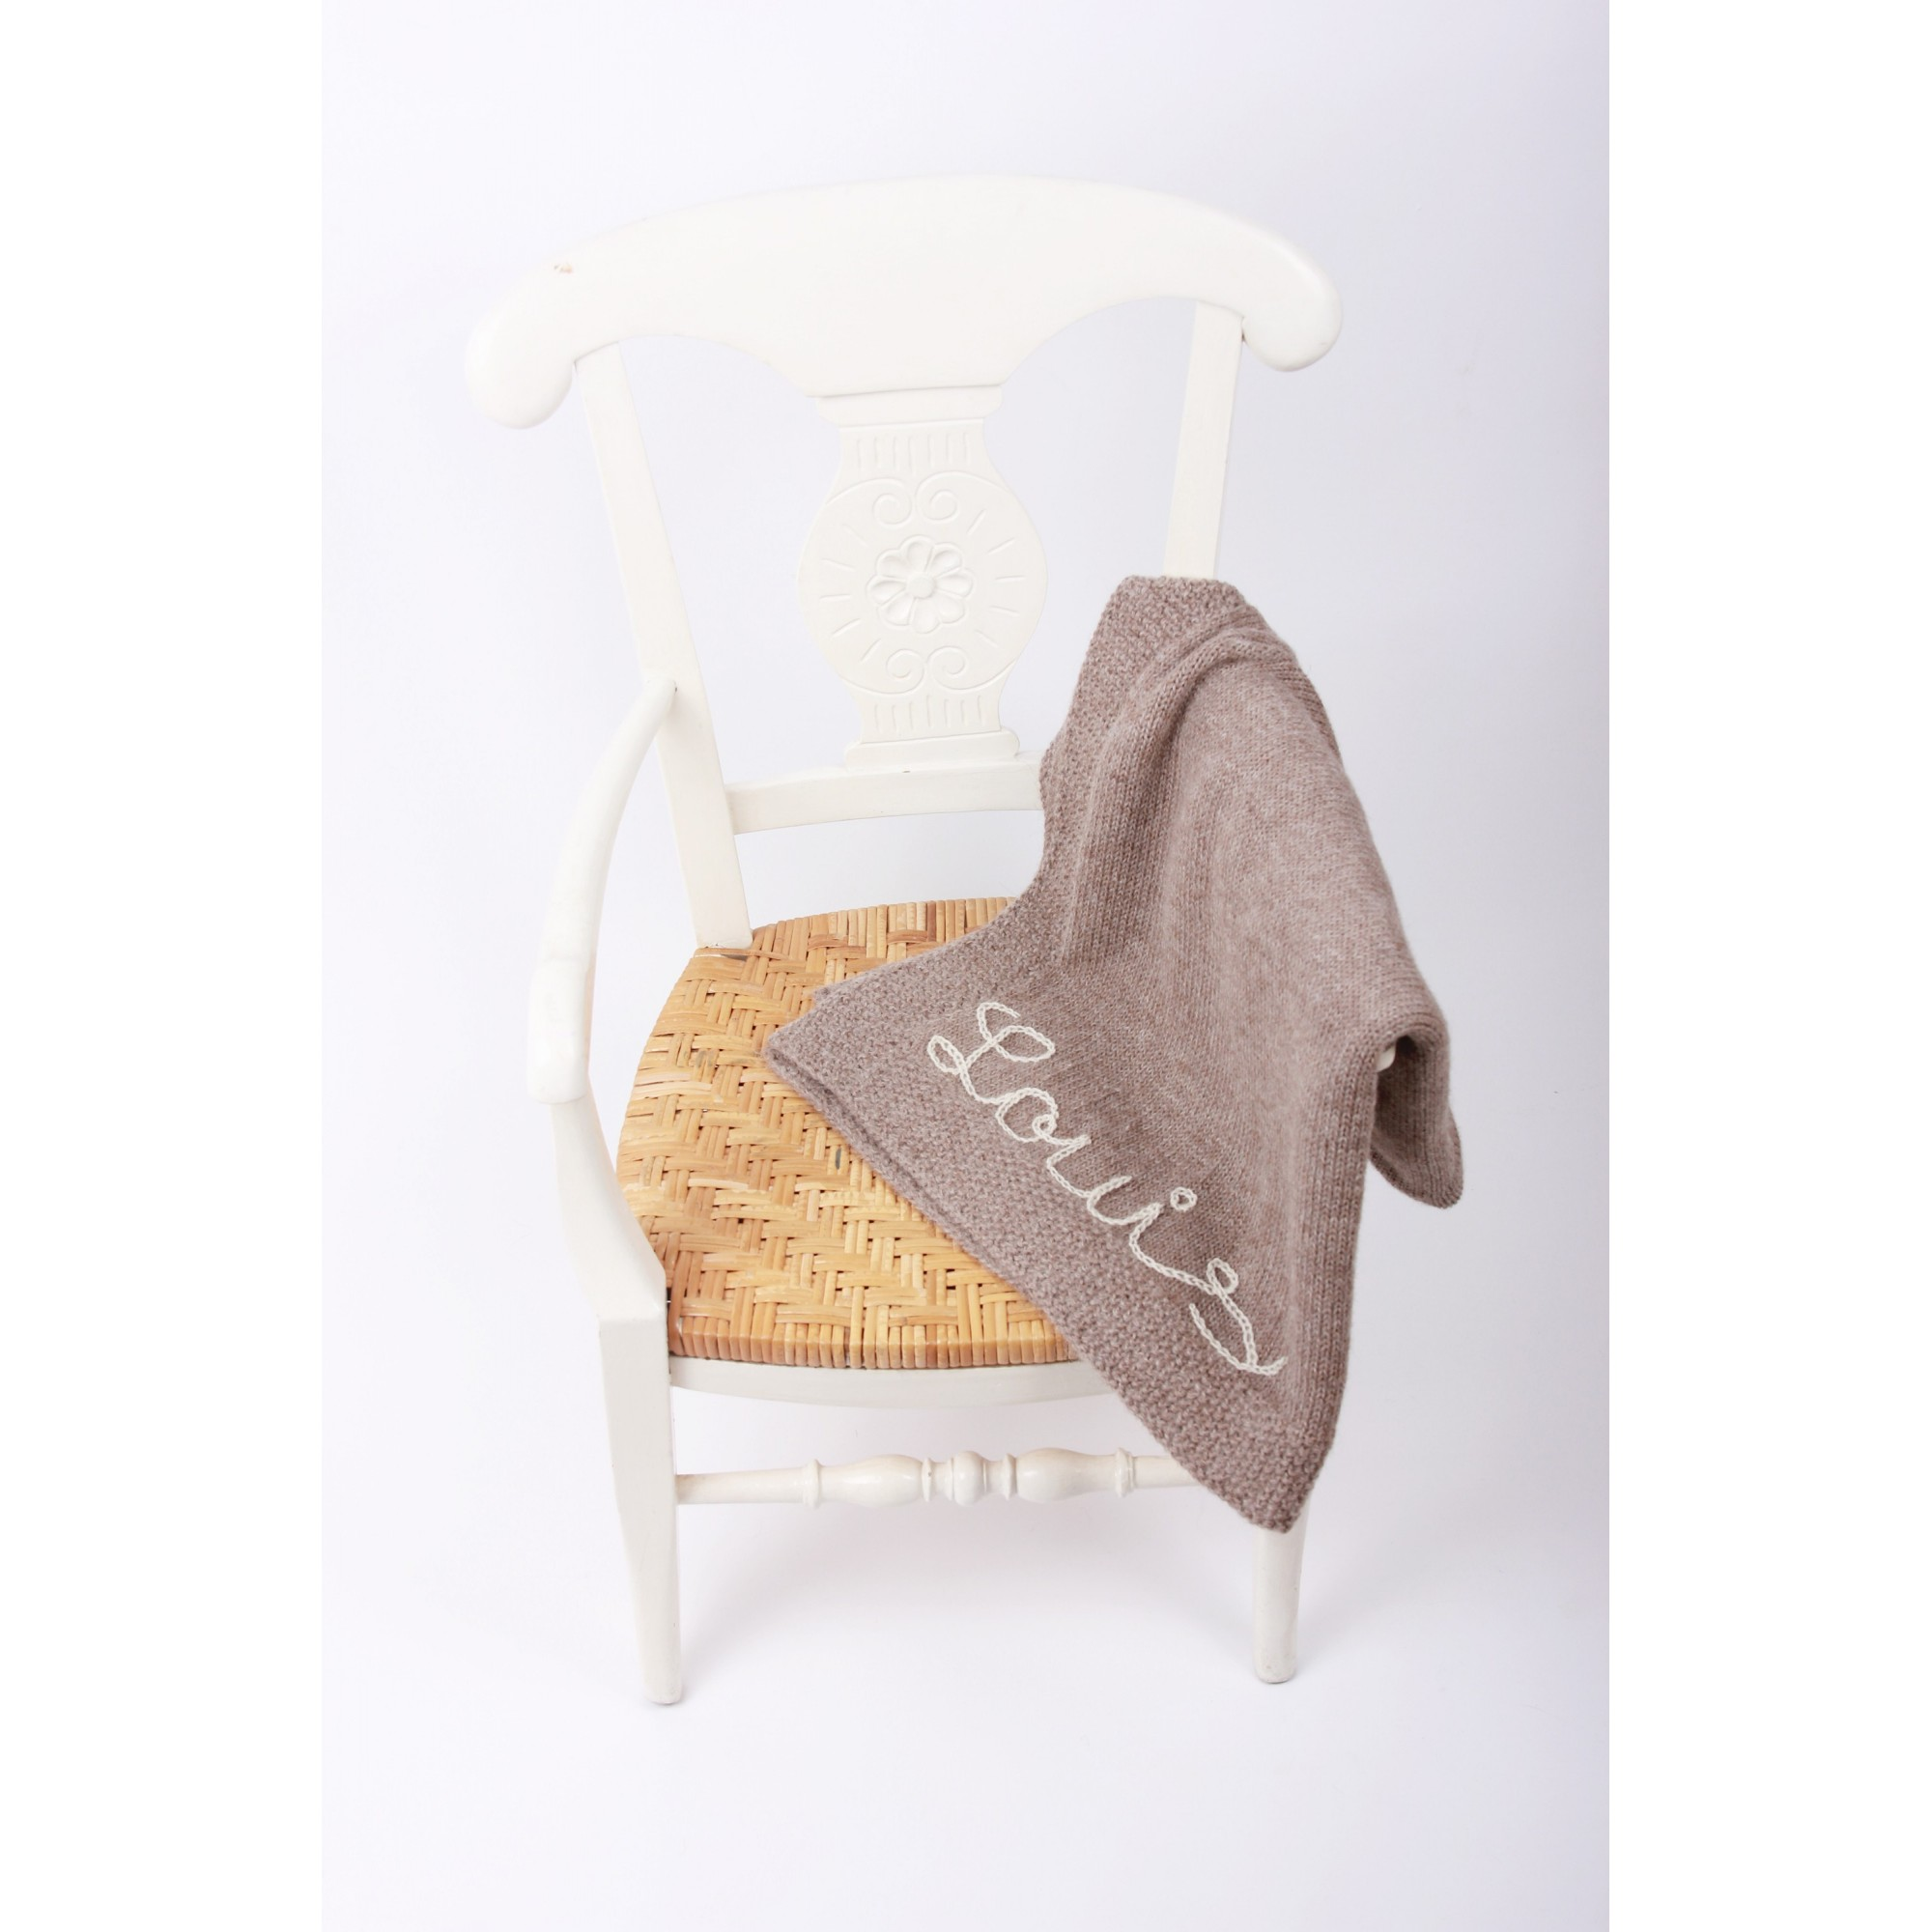 Light brown baby blanket made from 100% alpaga wool with natural white embroideries